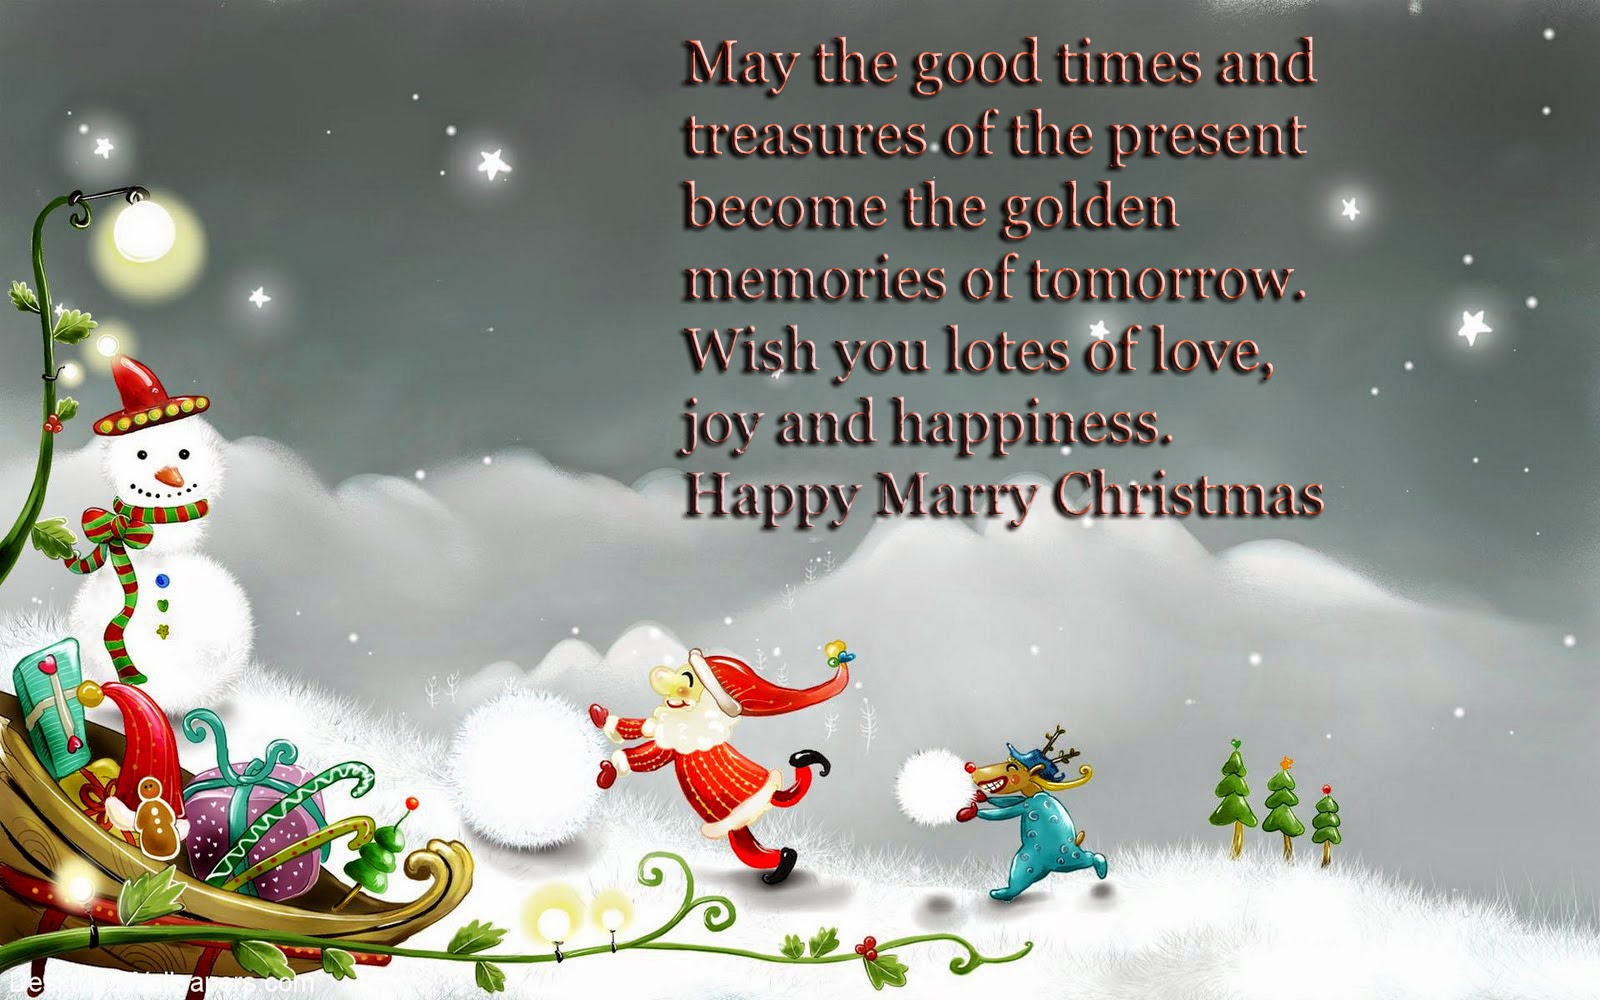 2014 greetings messages sms wishes whats app happy merry christmas greetings merry christmas 2013 poems merry christmas quotes messages wallpapers